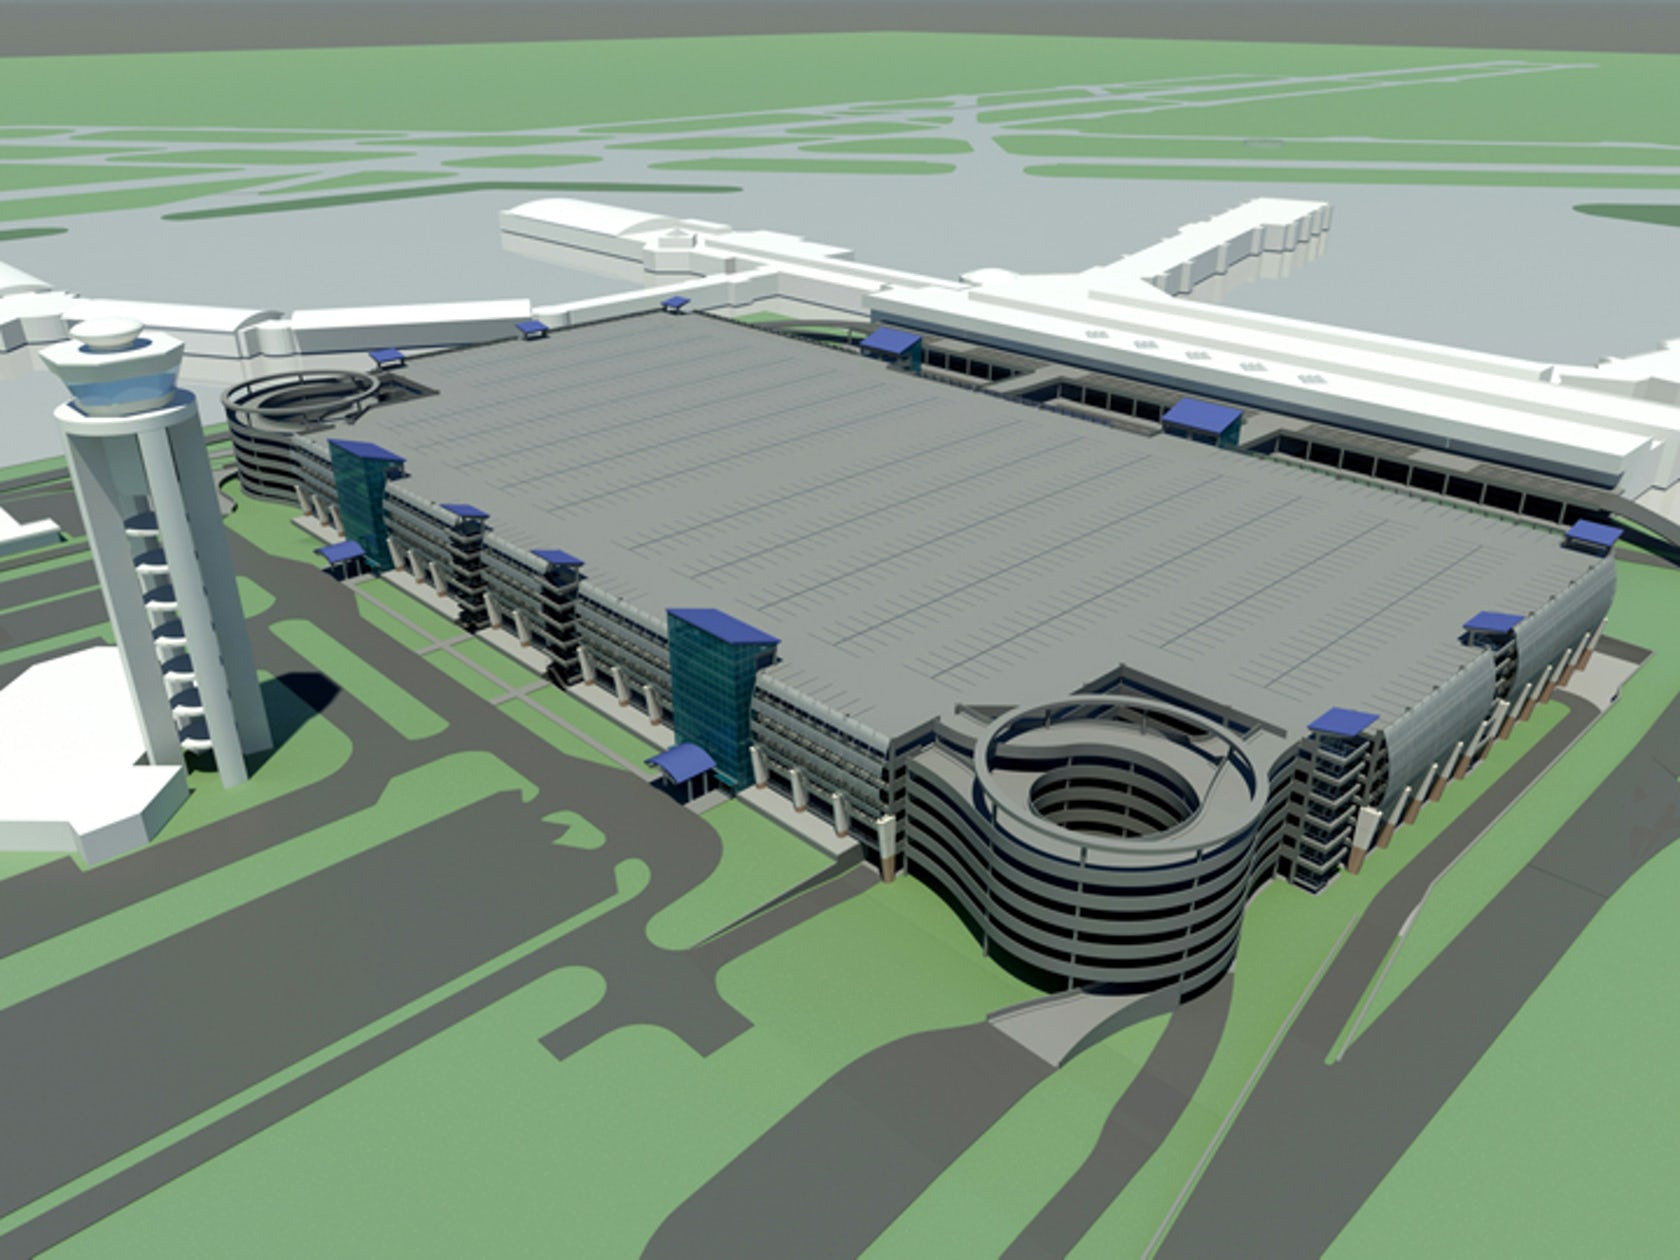 Cdia Rental Car Facility And Hourly Parking Deck Architizer